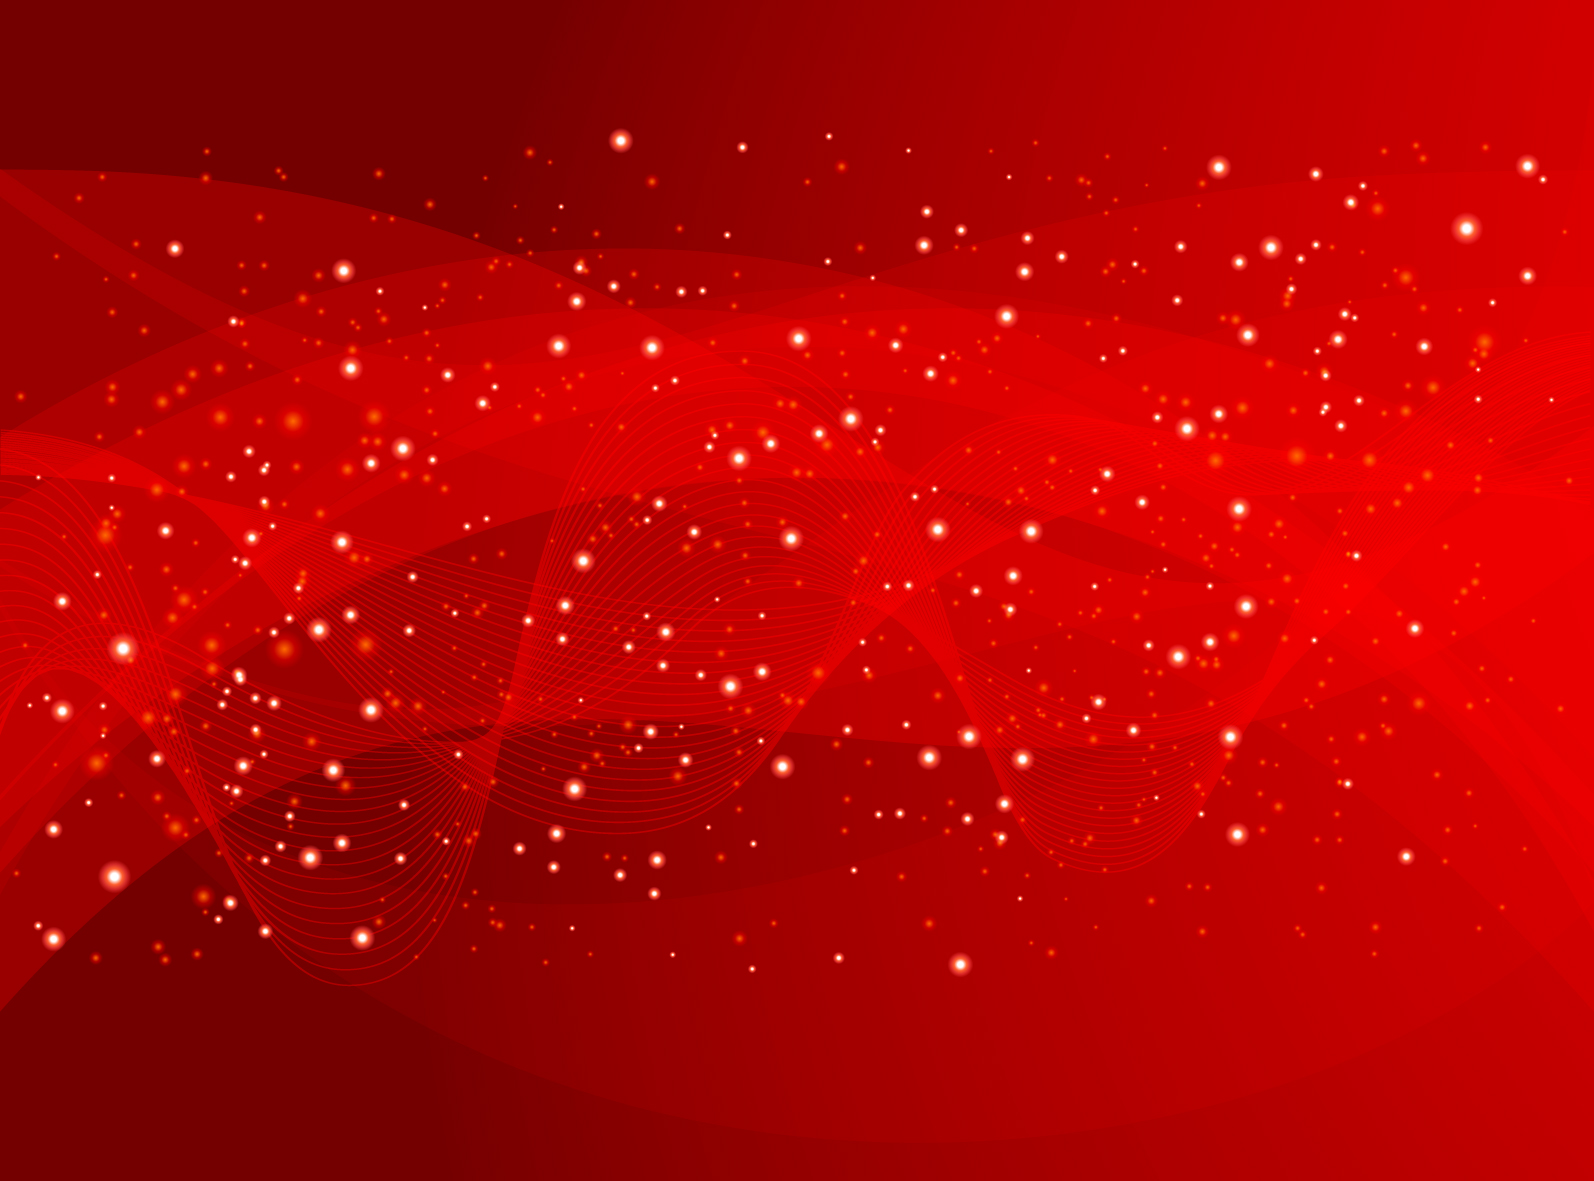 Red Background Wallpaper Image HD #6423 Wallpaper